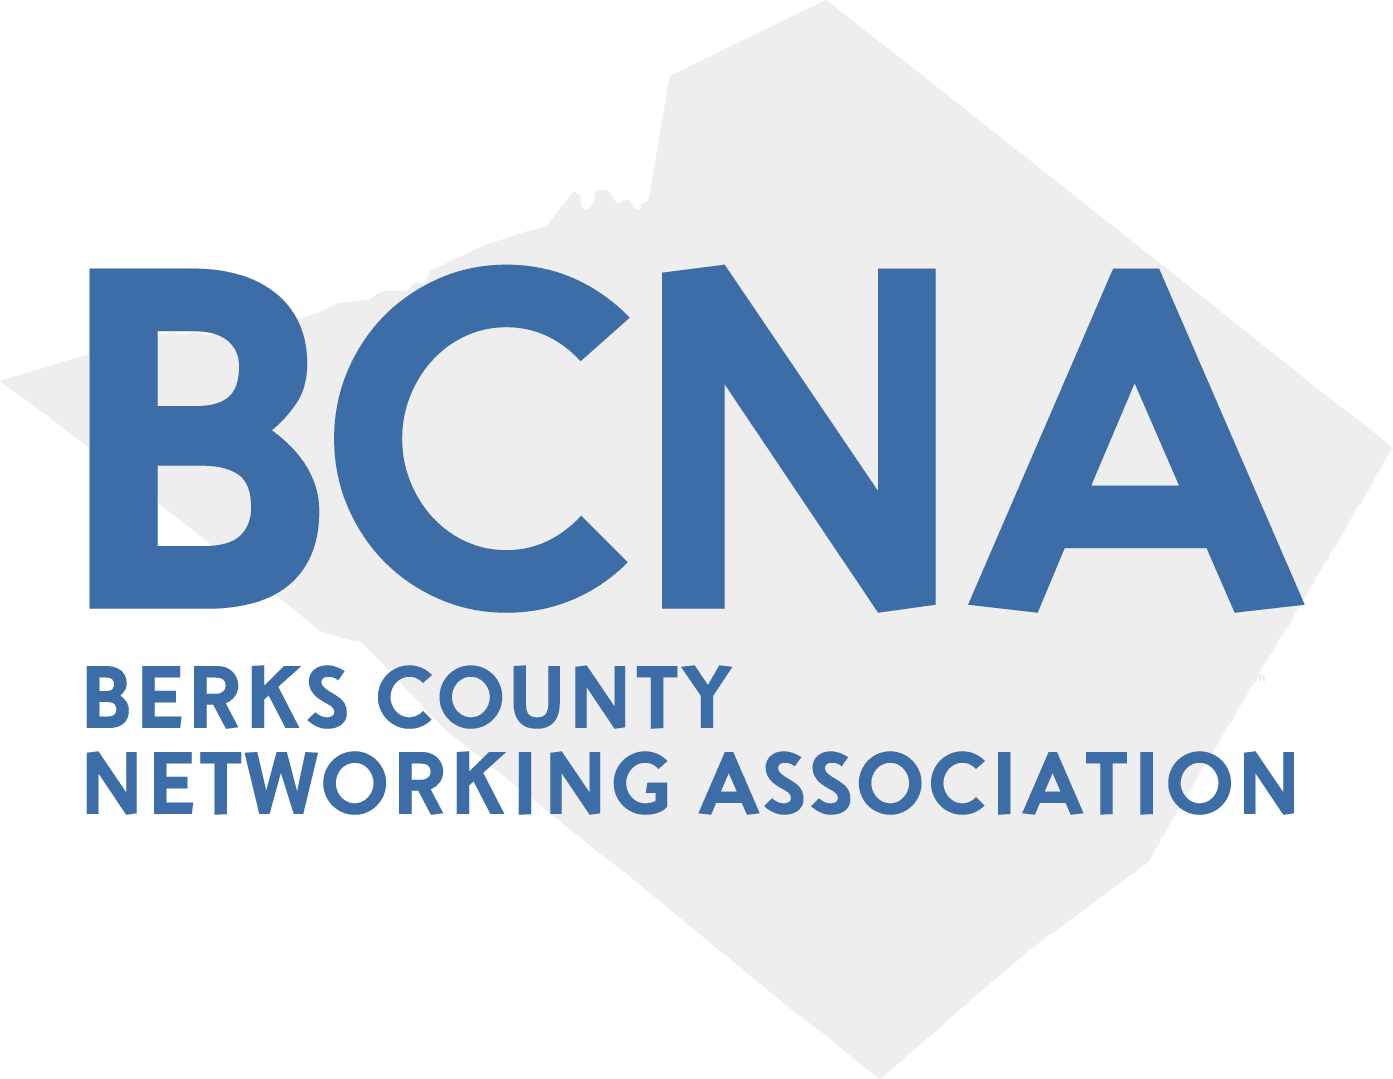 Berks County Networking Association